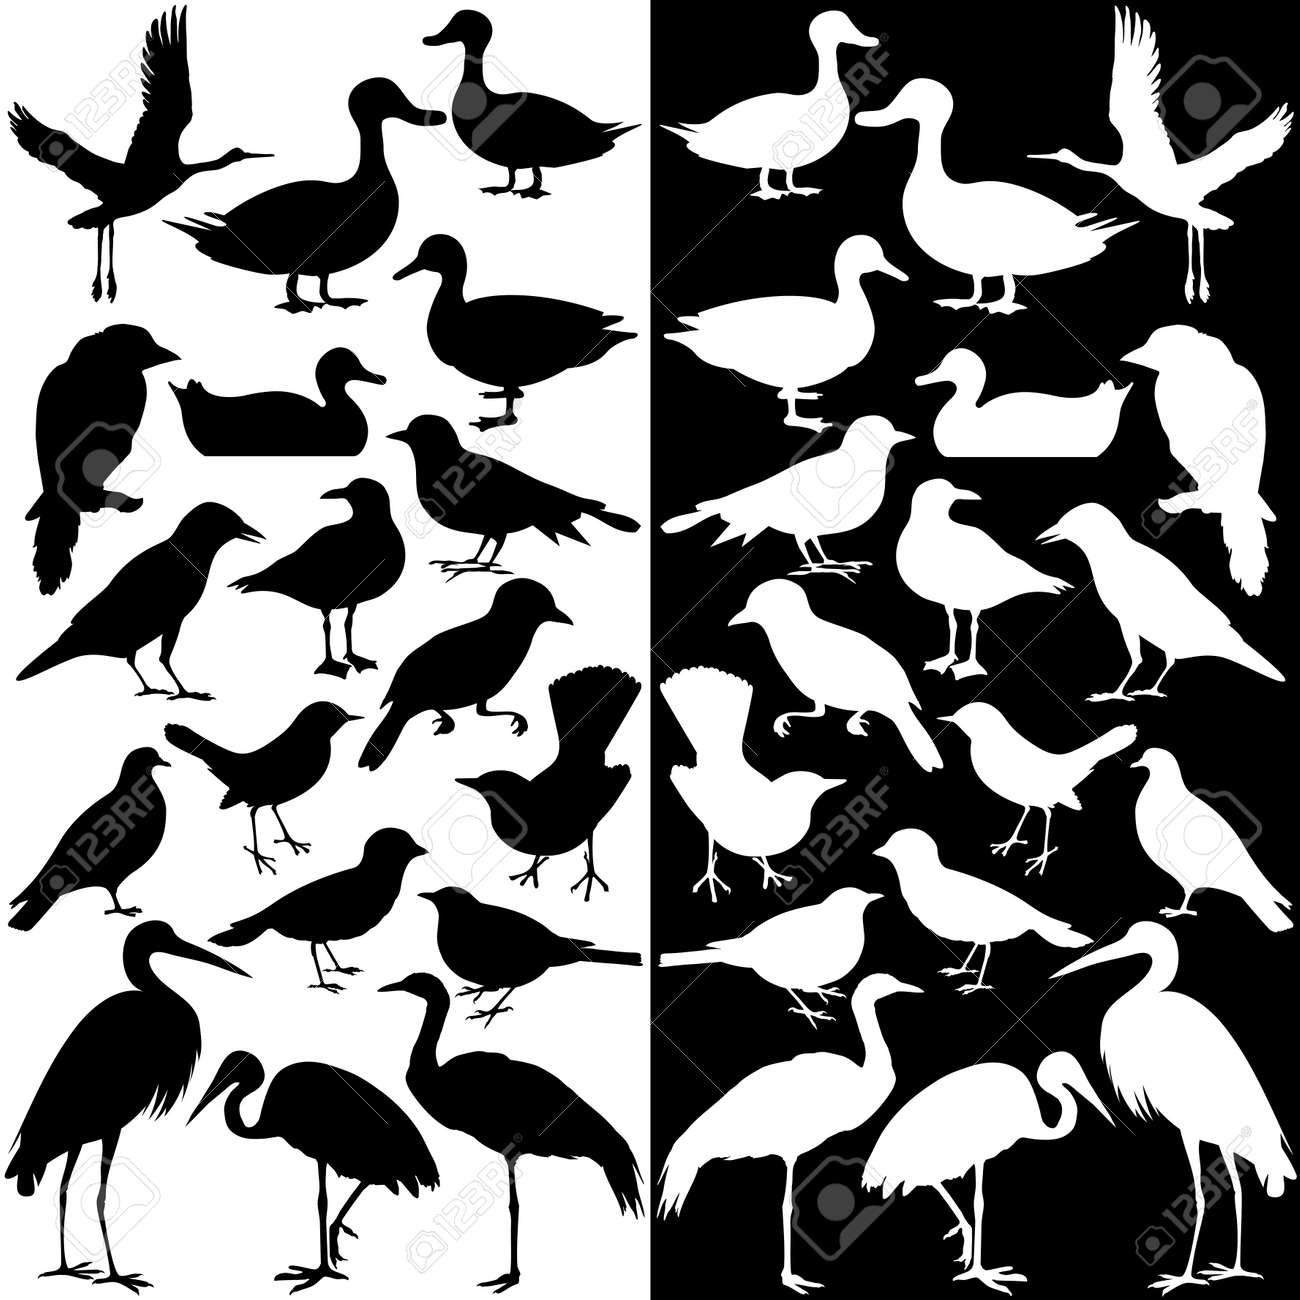 a collection of birds silhouettes black and white royalty free